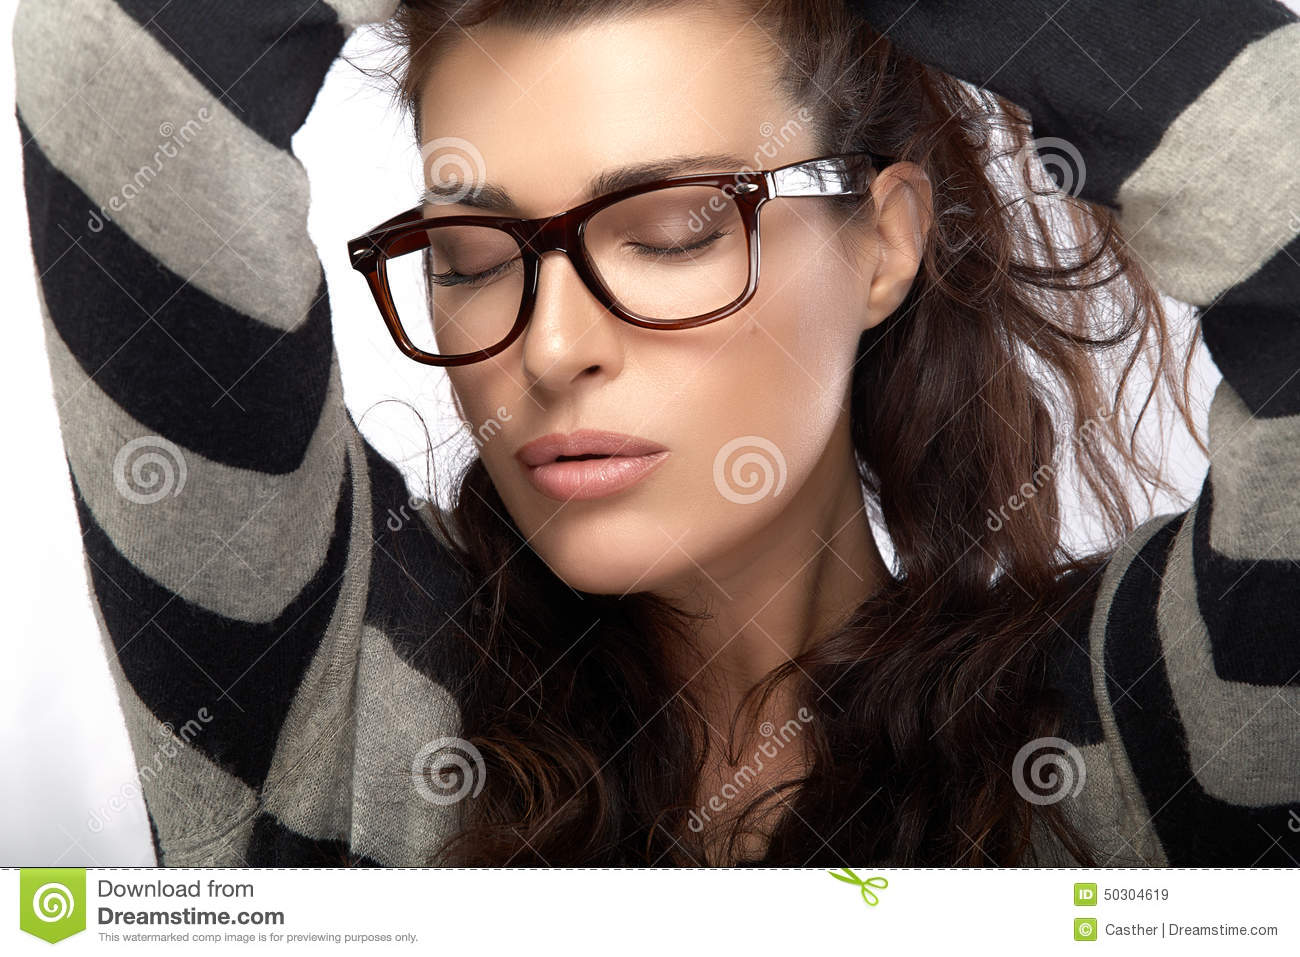 trendy eyewear hufo  Woman in Striped Jersey Holding her Hair Cool Trendy Eyewear Royalty Free  Stock Images